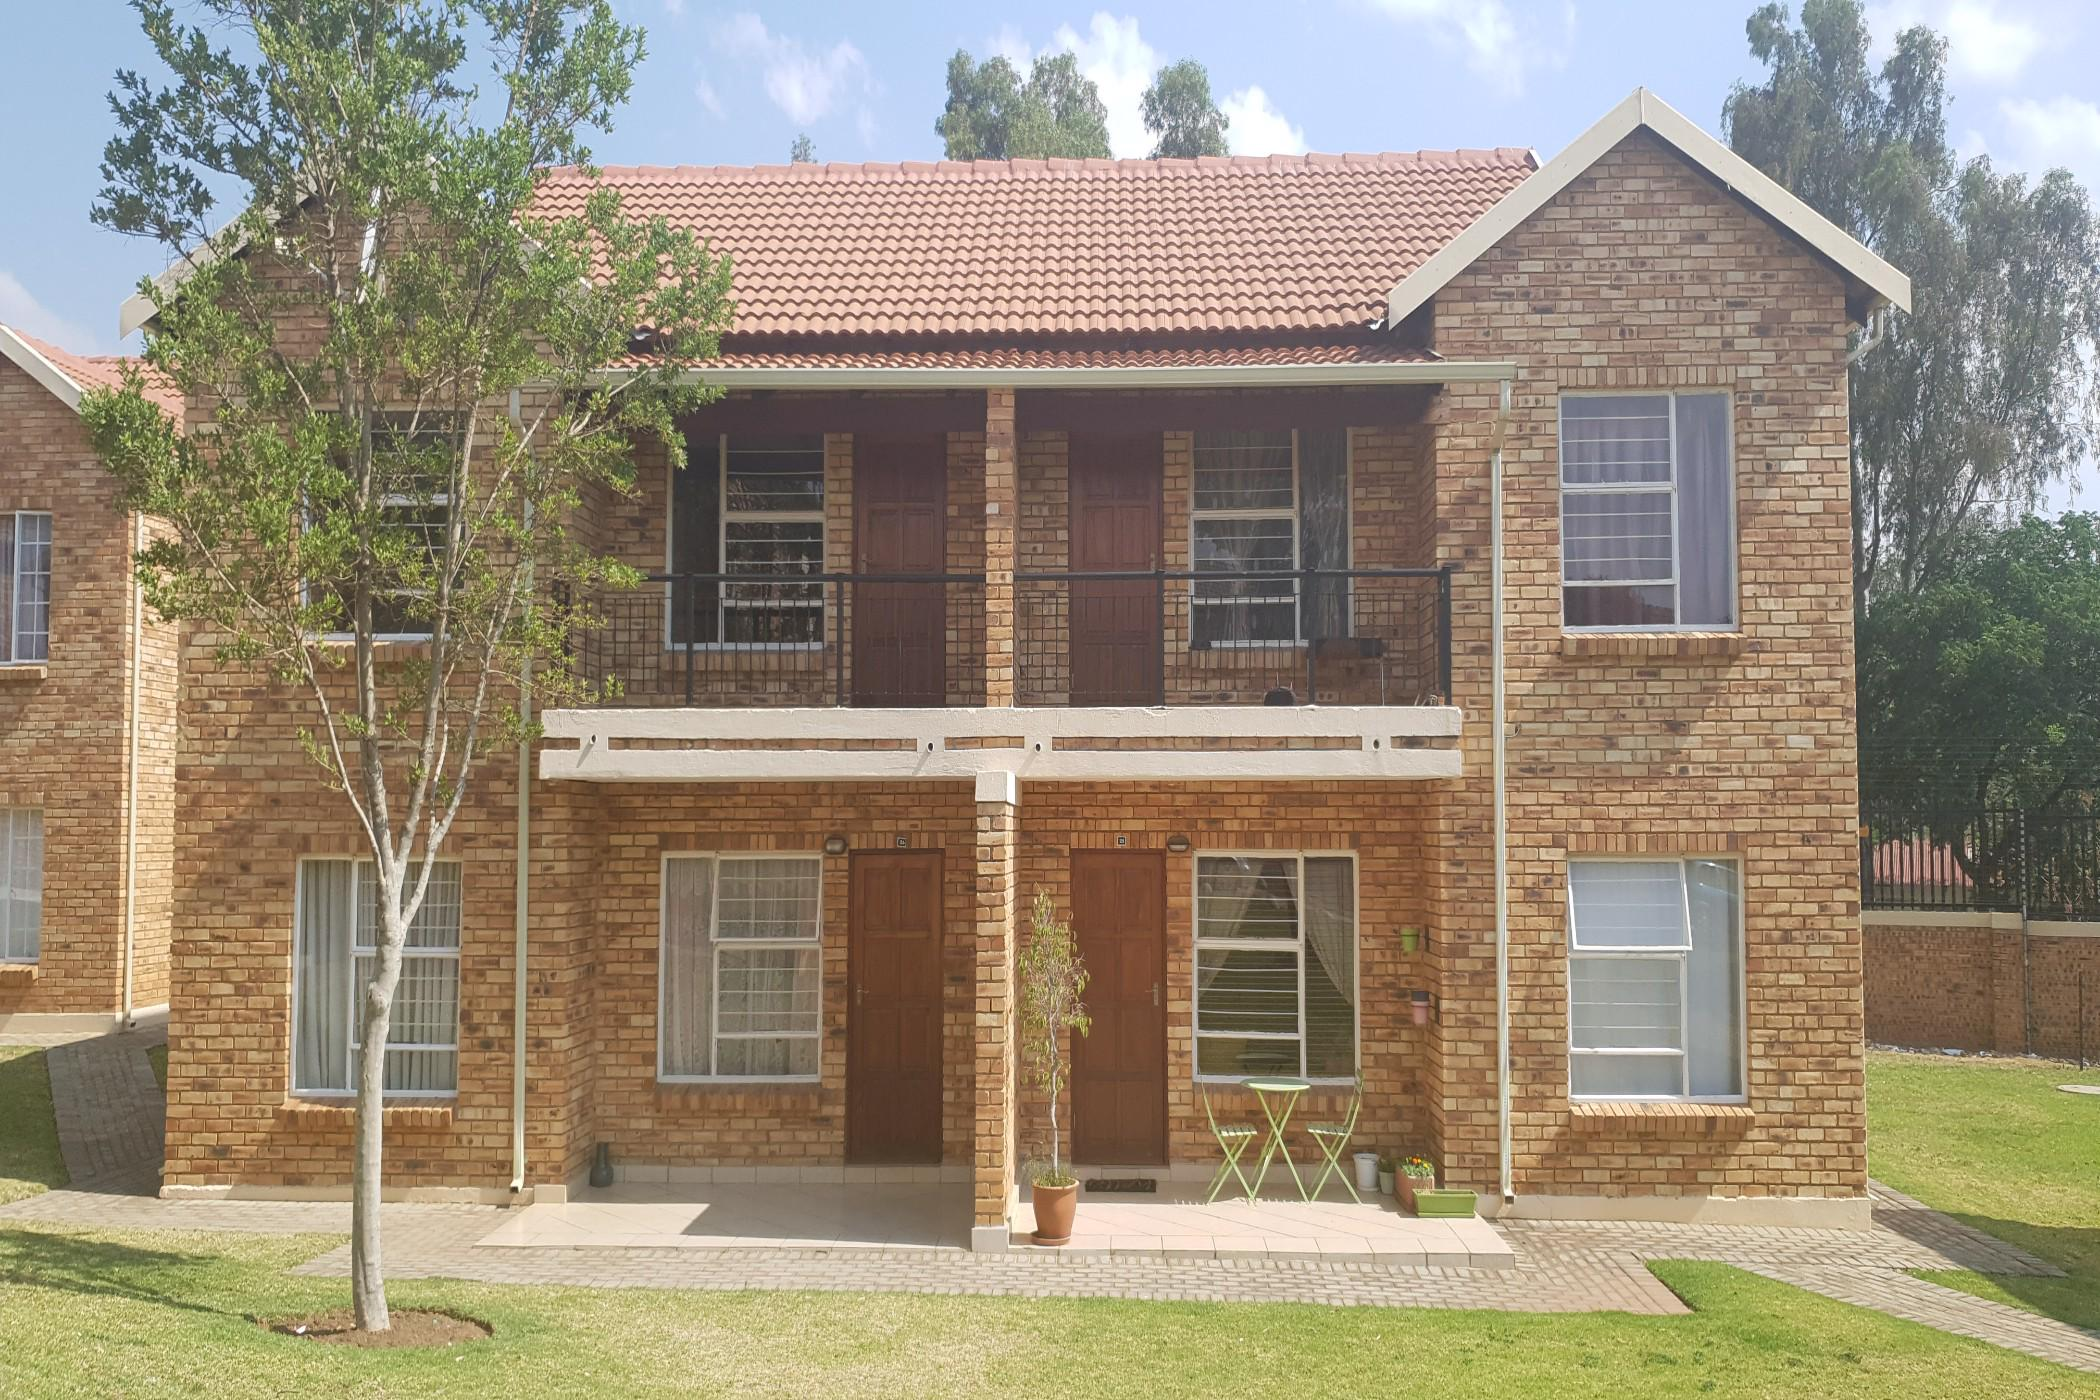 https://listing.pamgolding.co.za/images/properties/201911/1539186/H/1539186_H_66.jpg